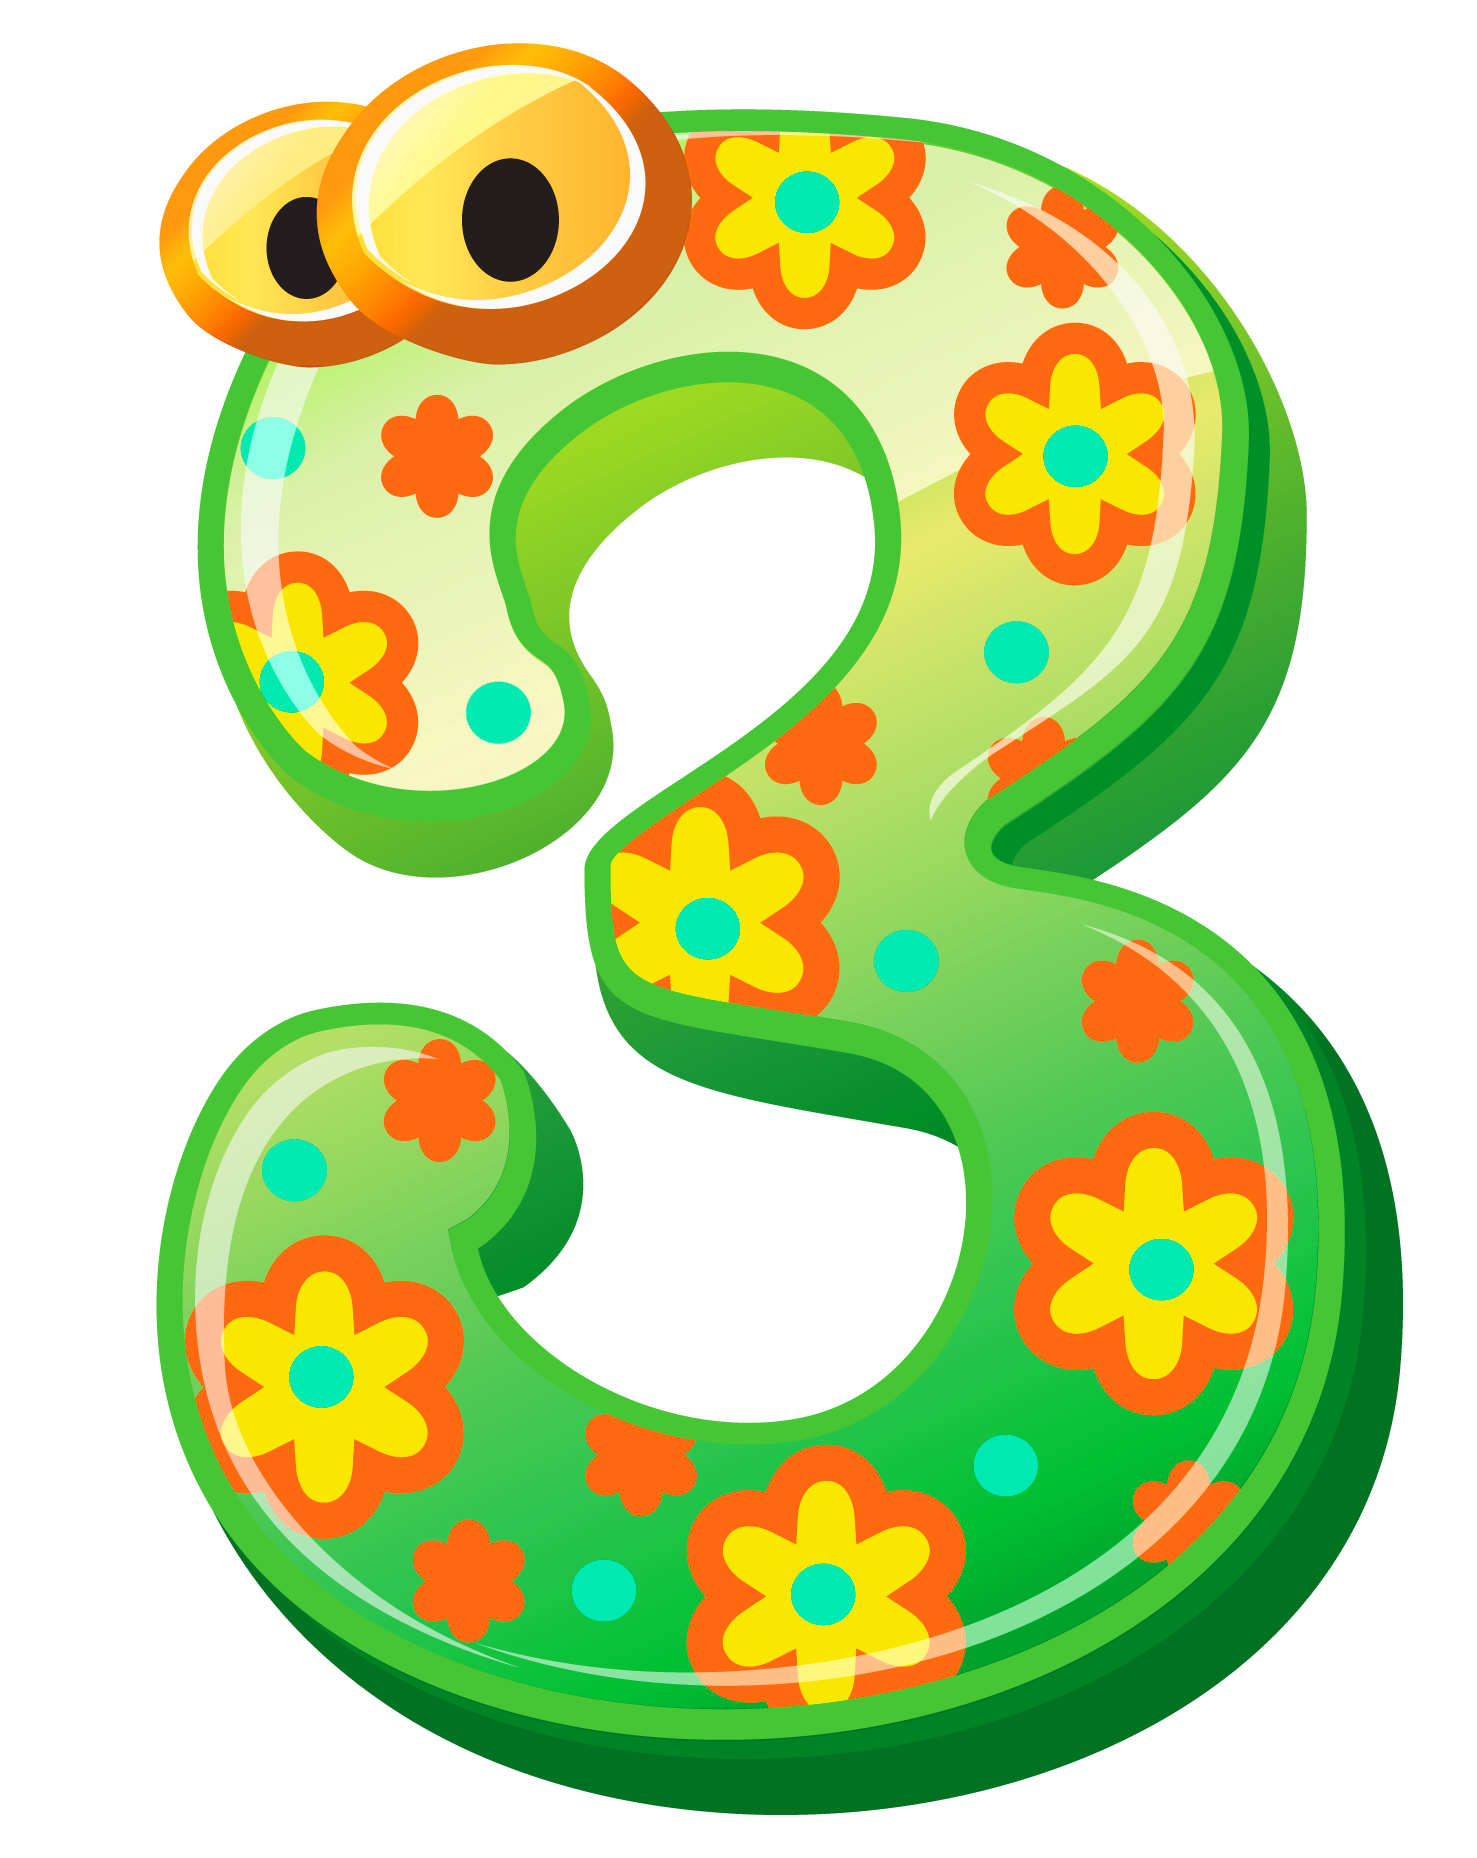 Ham clipart cute. Number three png image